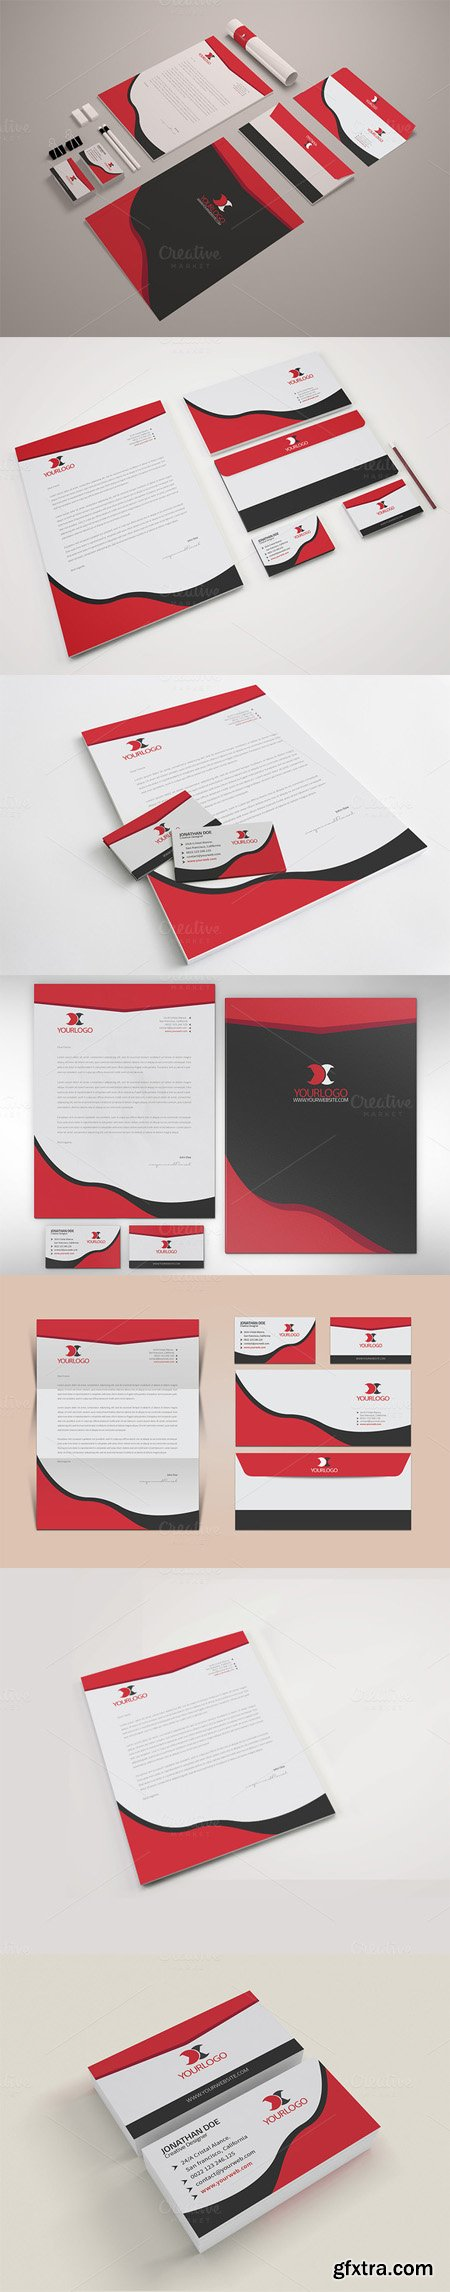 CM - Stationery Template 469430